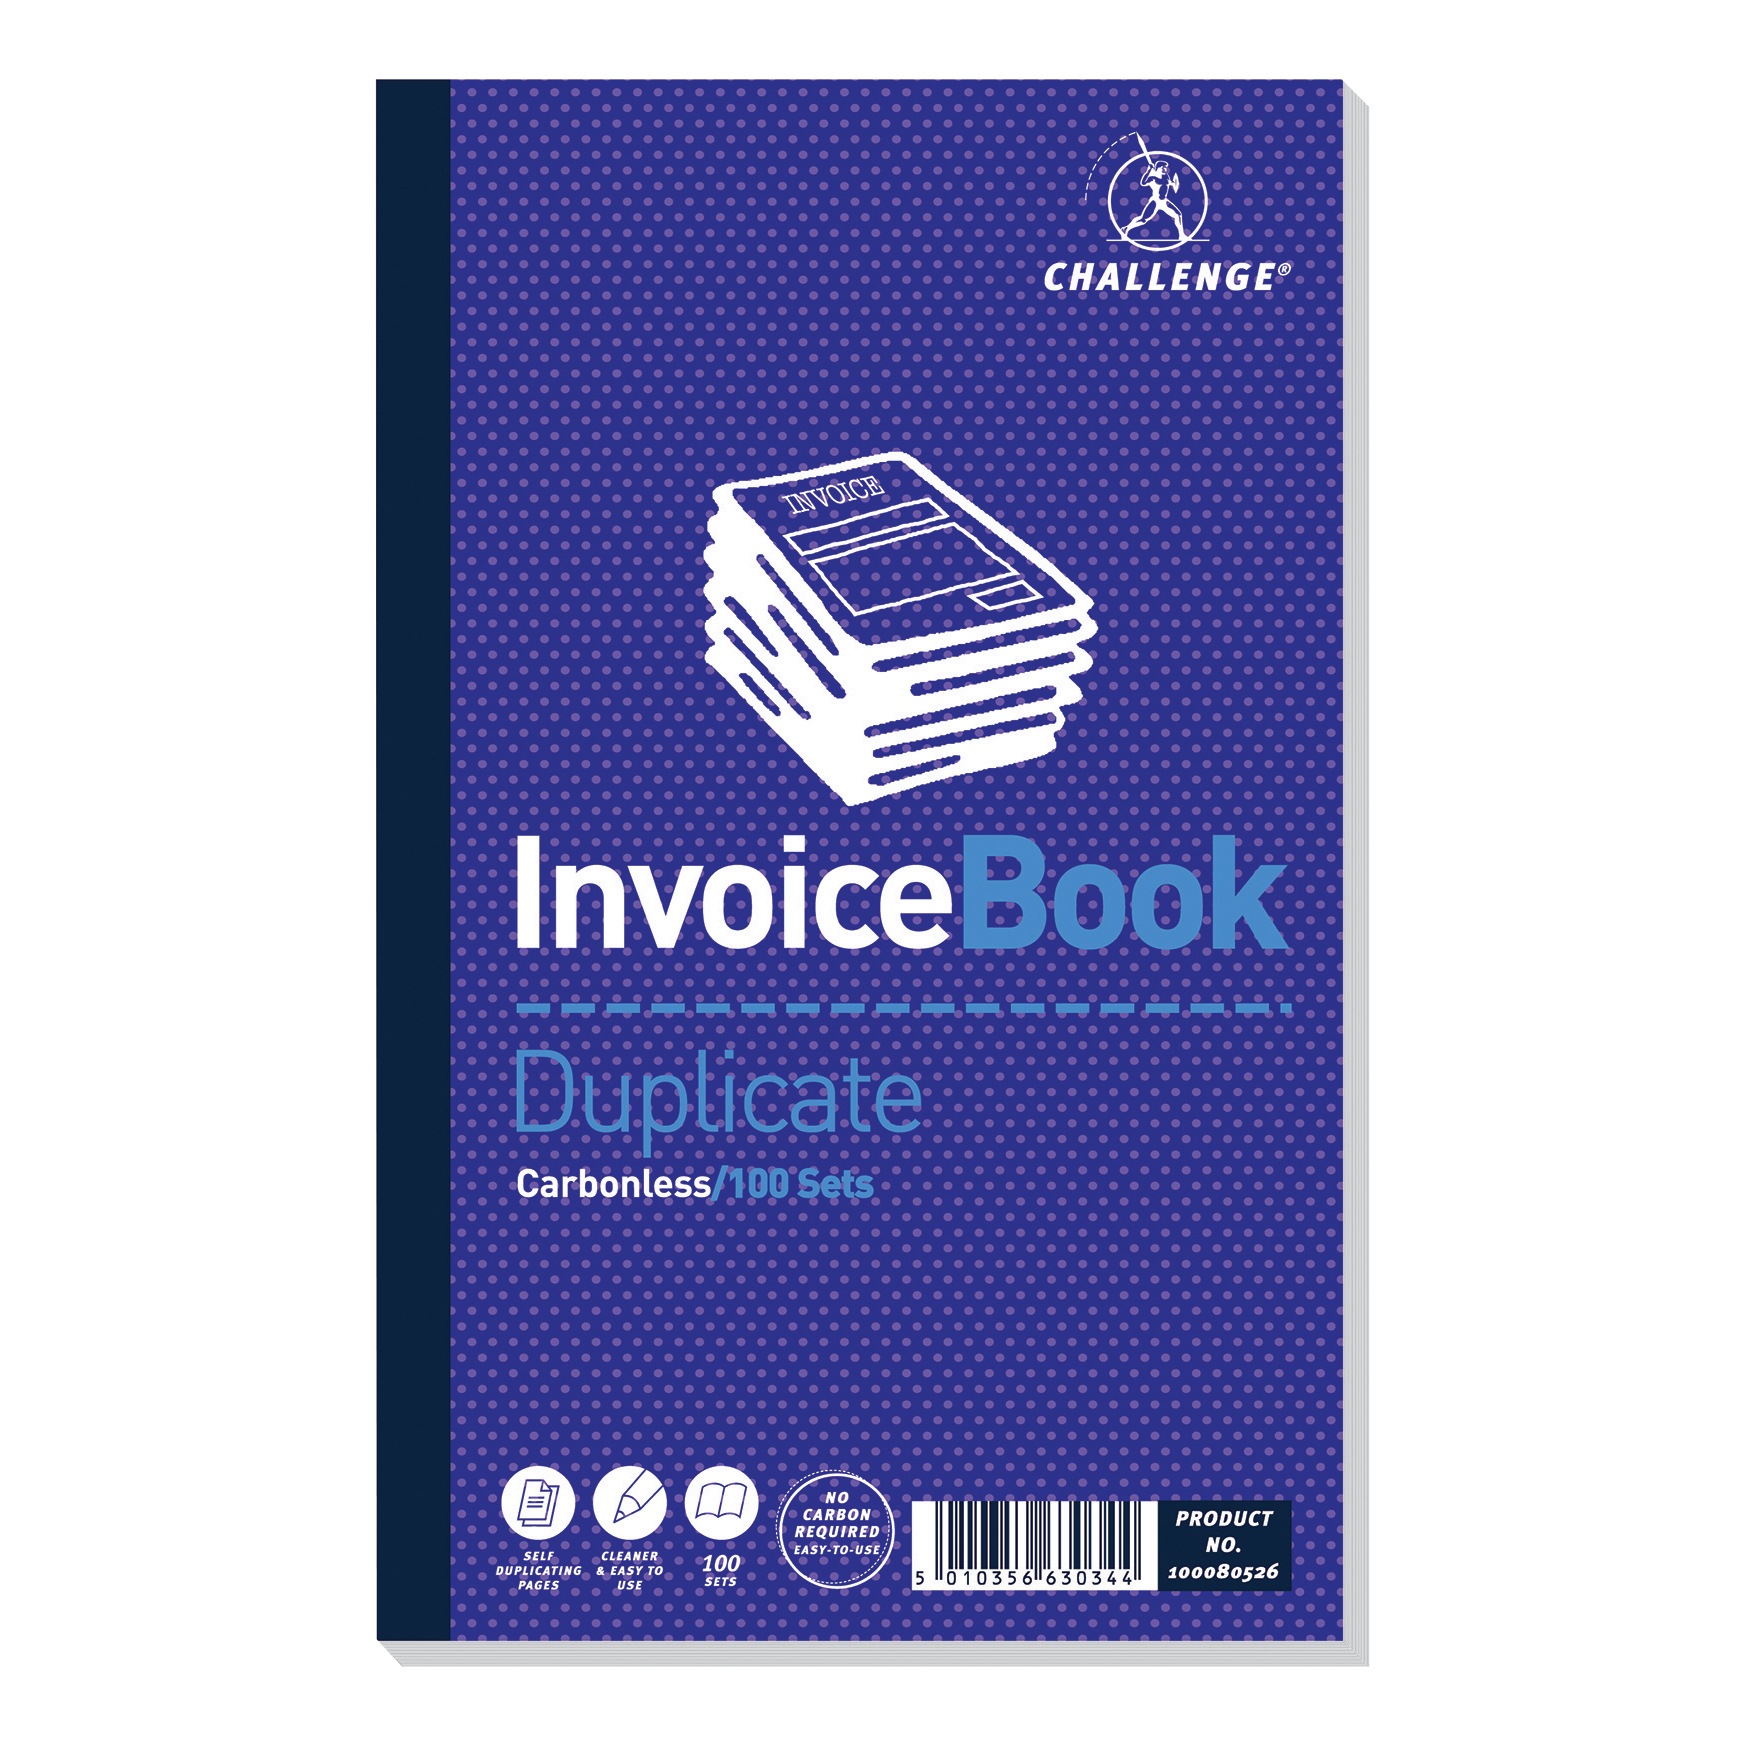 Duplicate Challenge Duplicate Book Carbonless Invoice without VAT/tax 100 Sets 210x130mm Ref 100080526 Pack 5